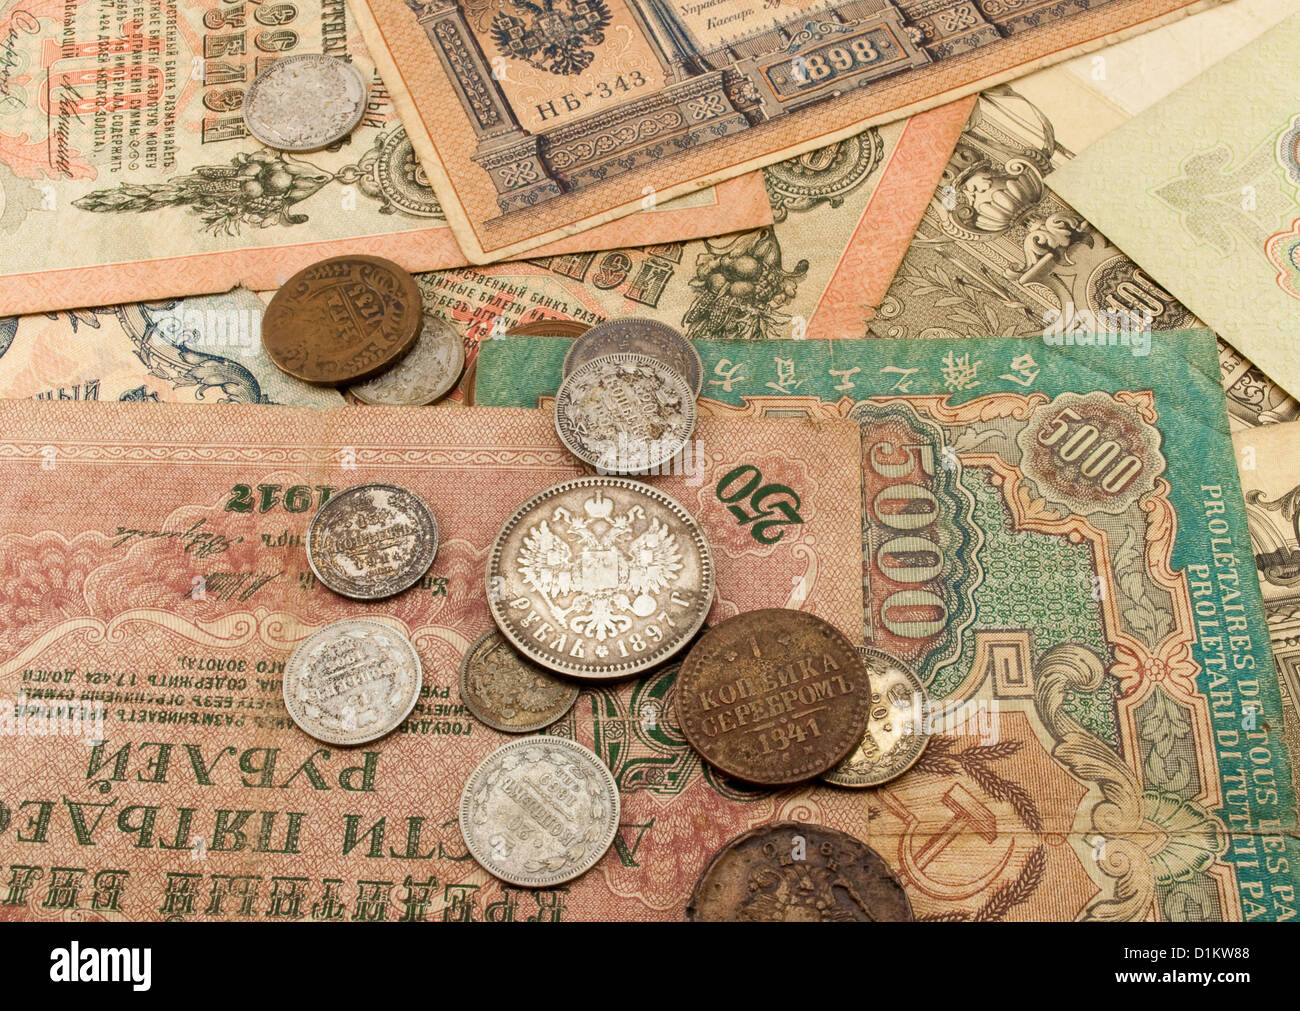 The old banknotes and coins - Stock Image